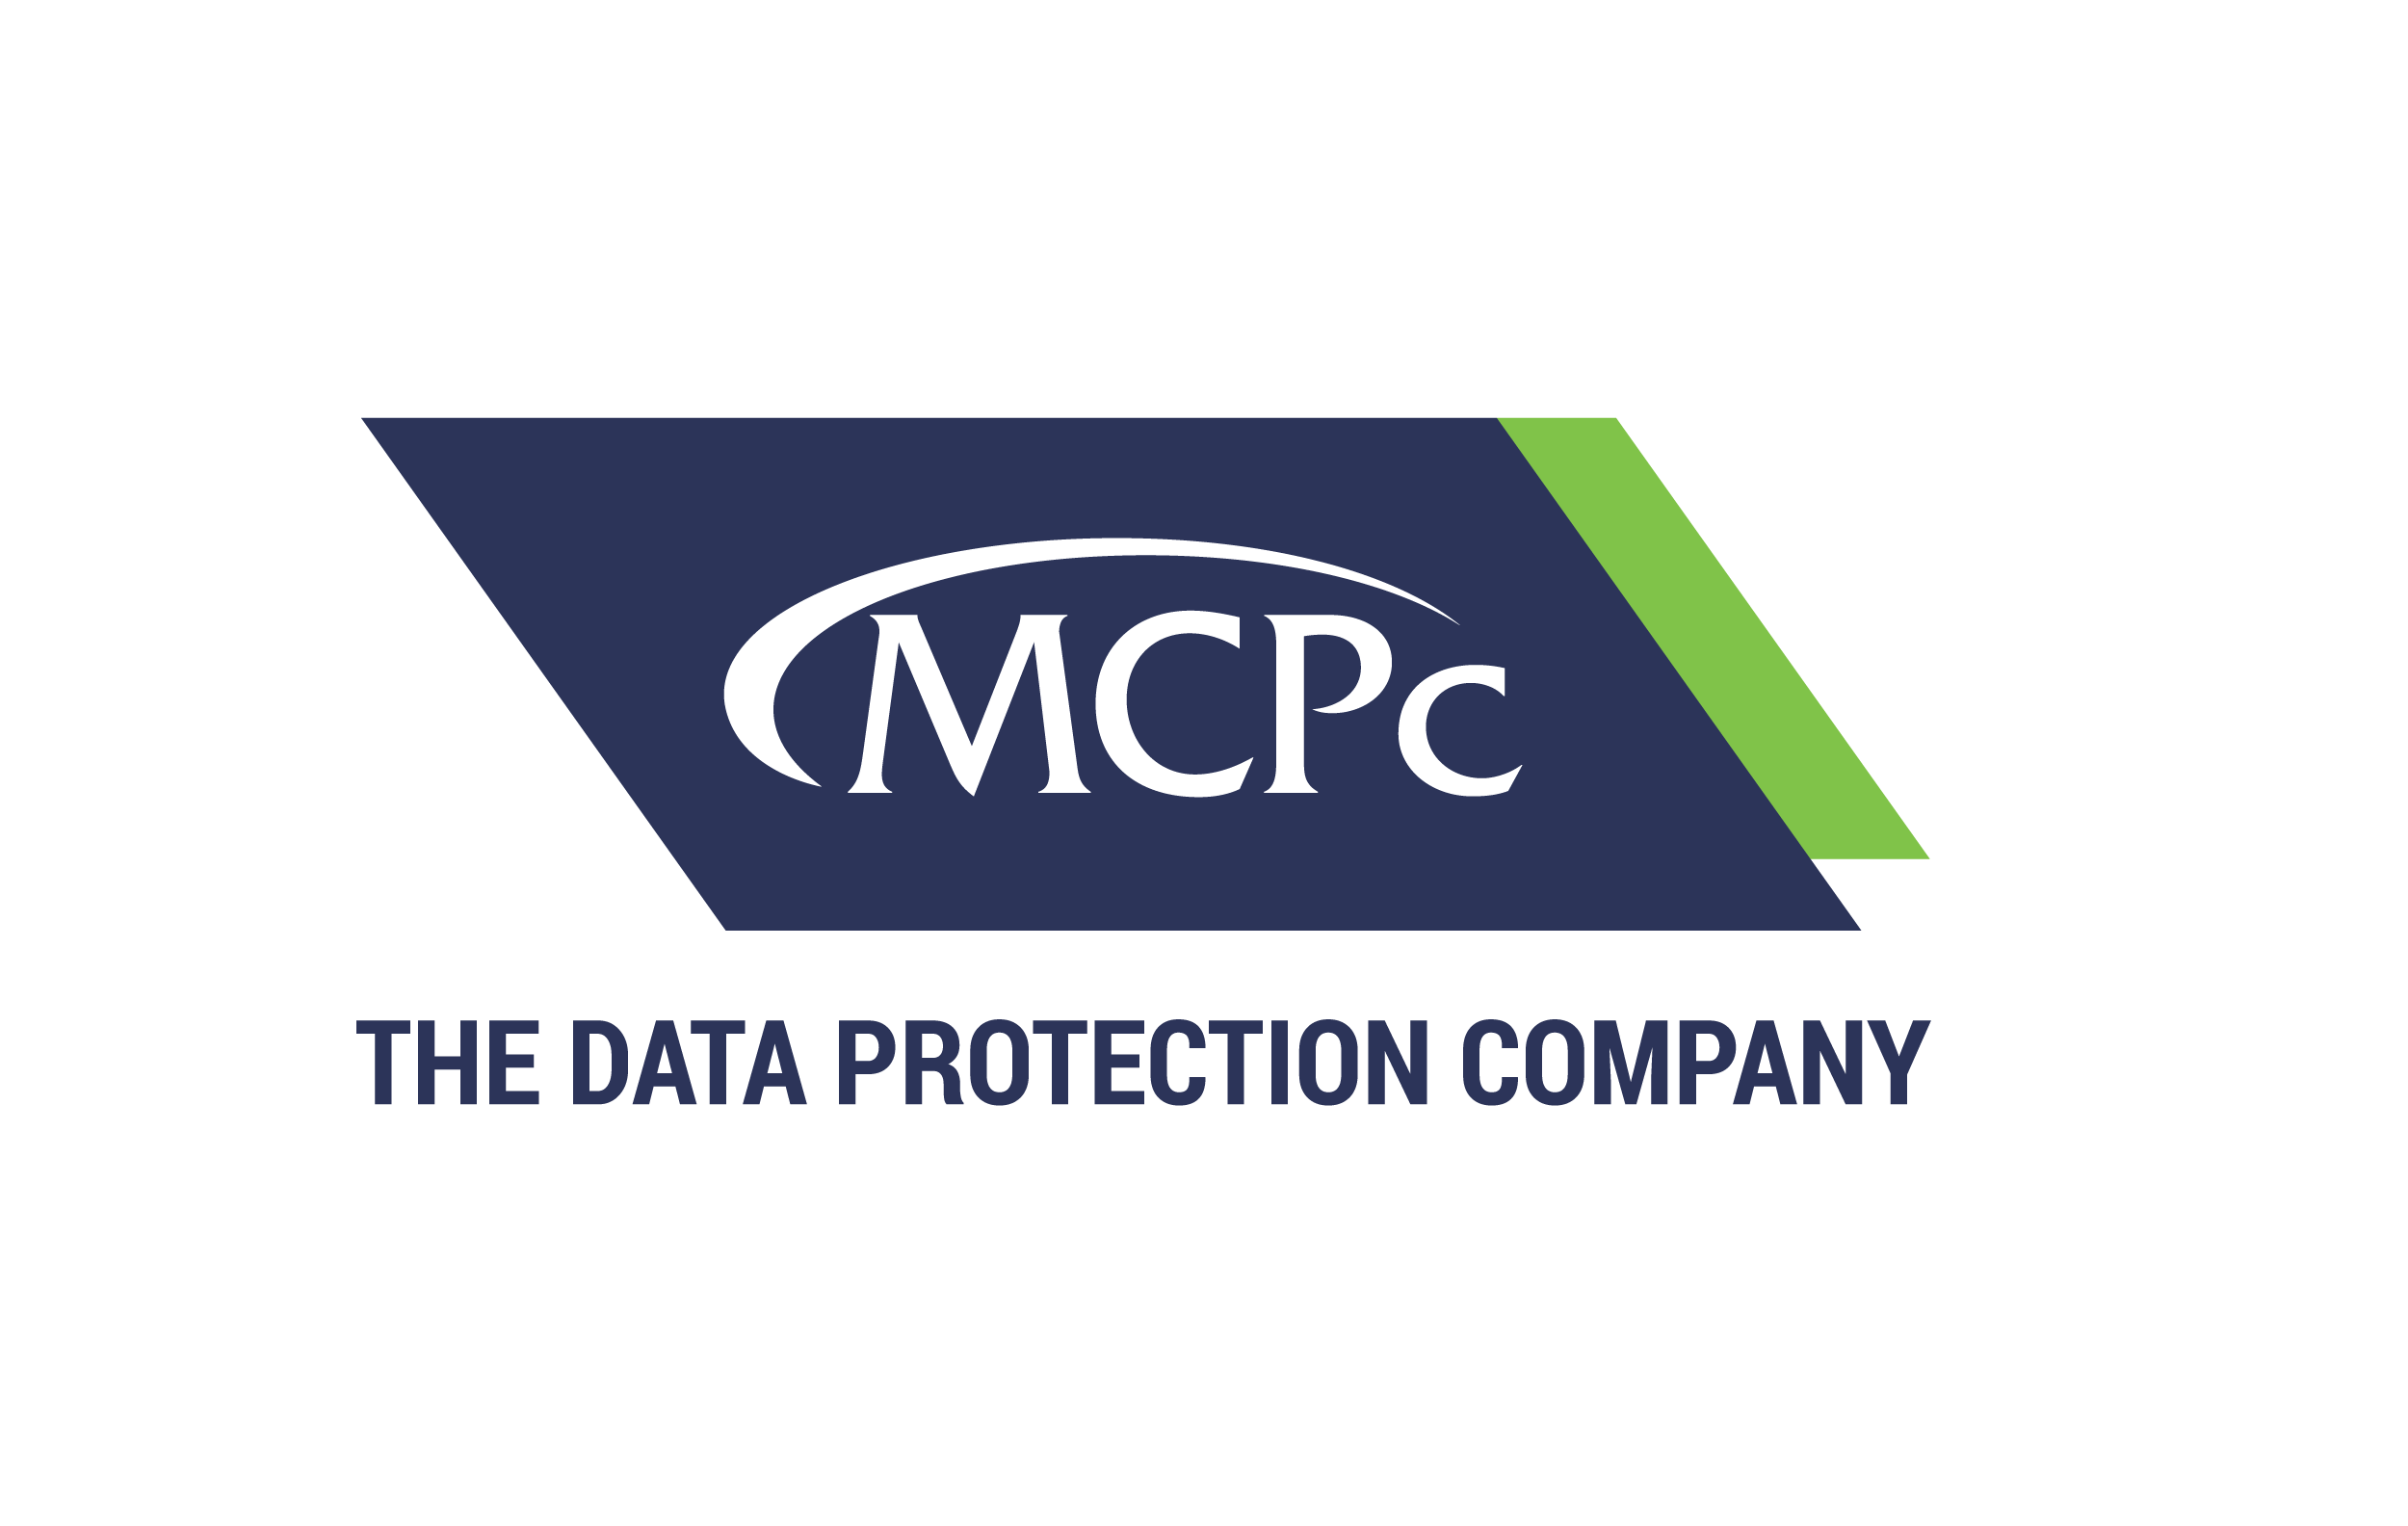 MCPc_TDPC_stacked_color_logo